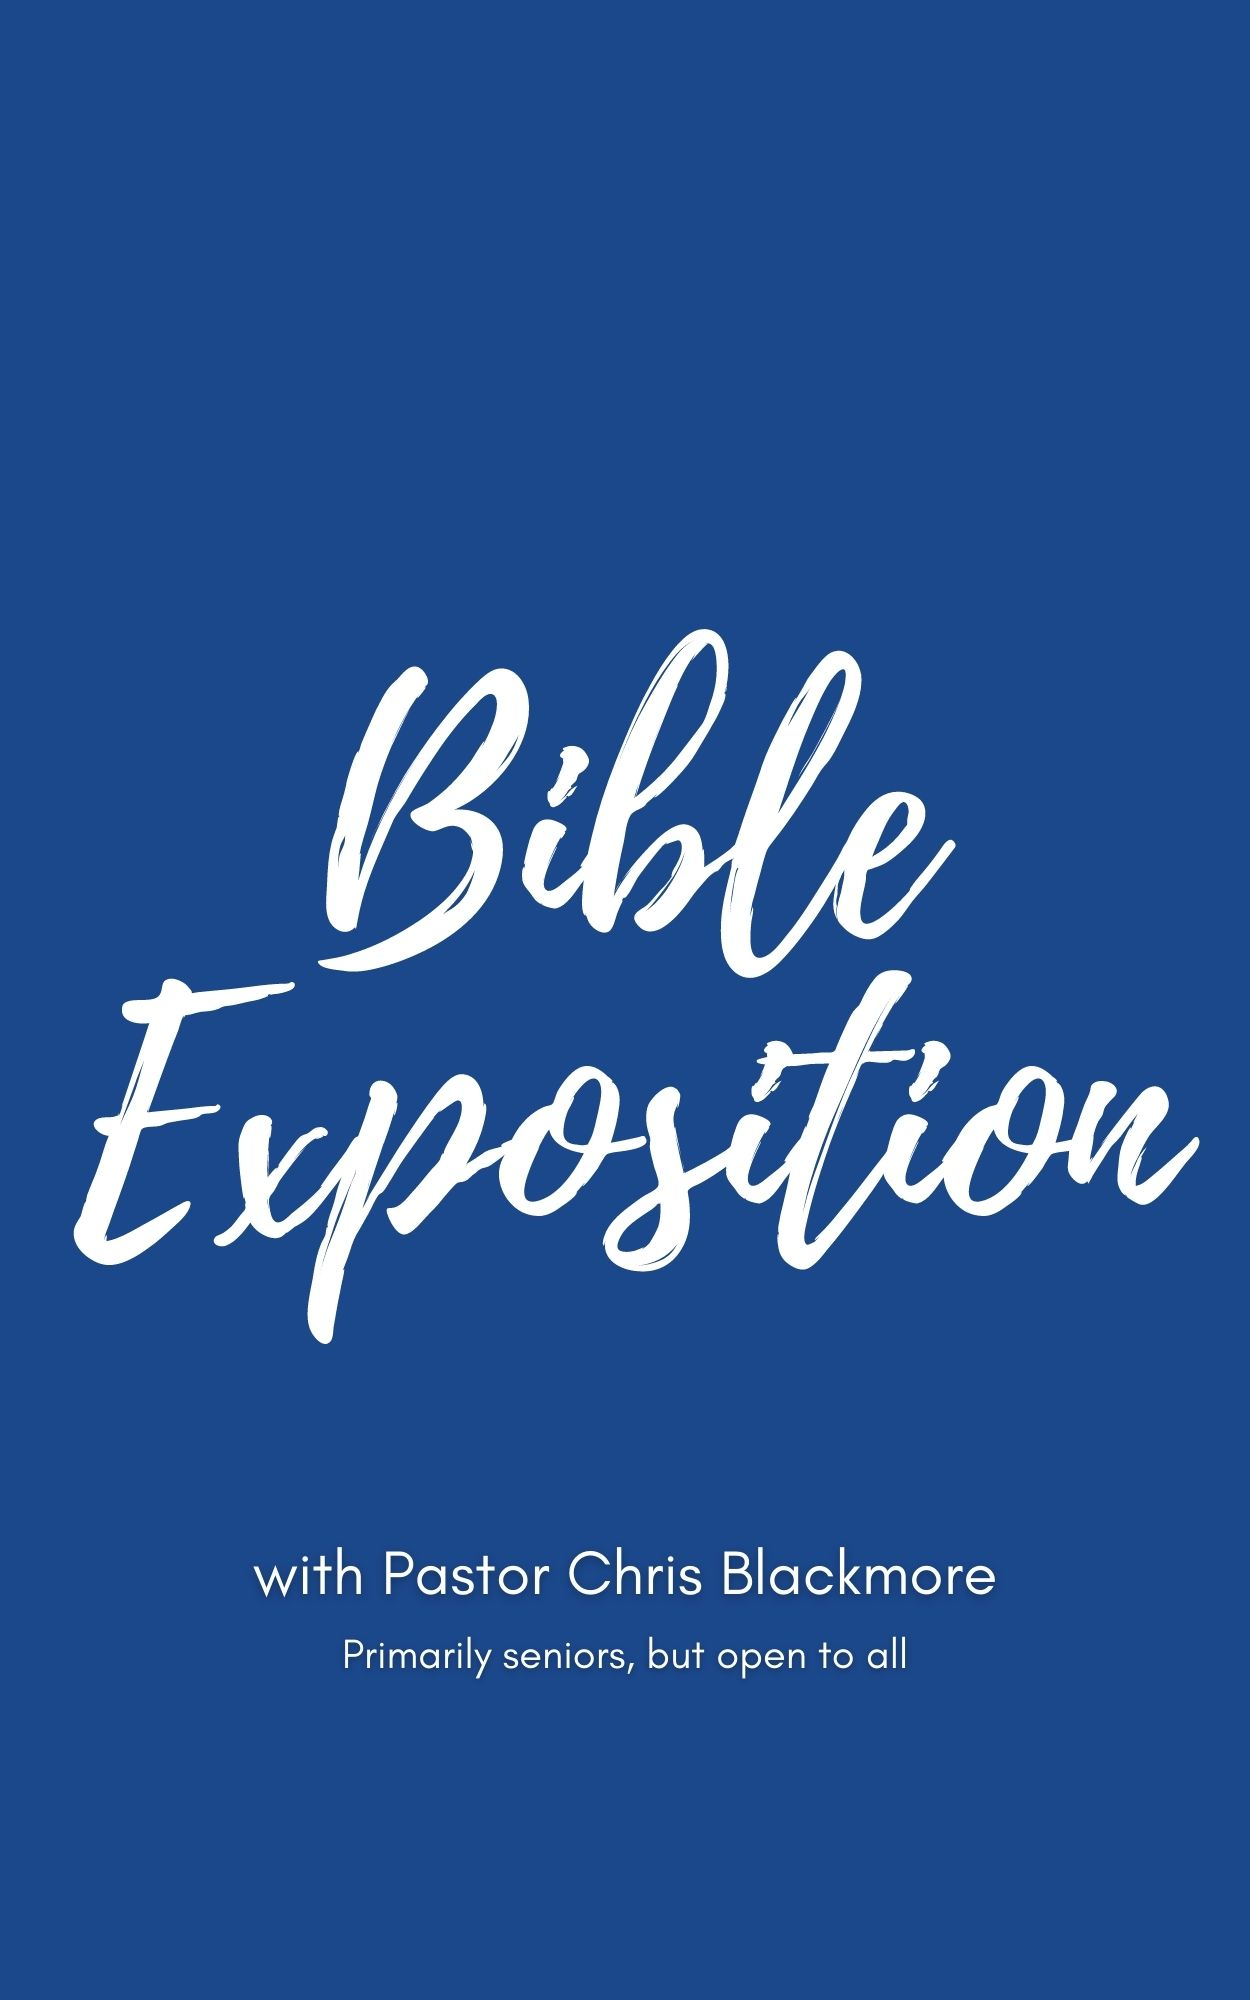 Bible Exposition with Pastor Chris Blackmore